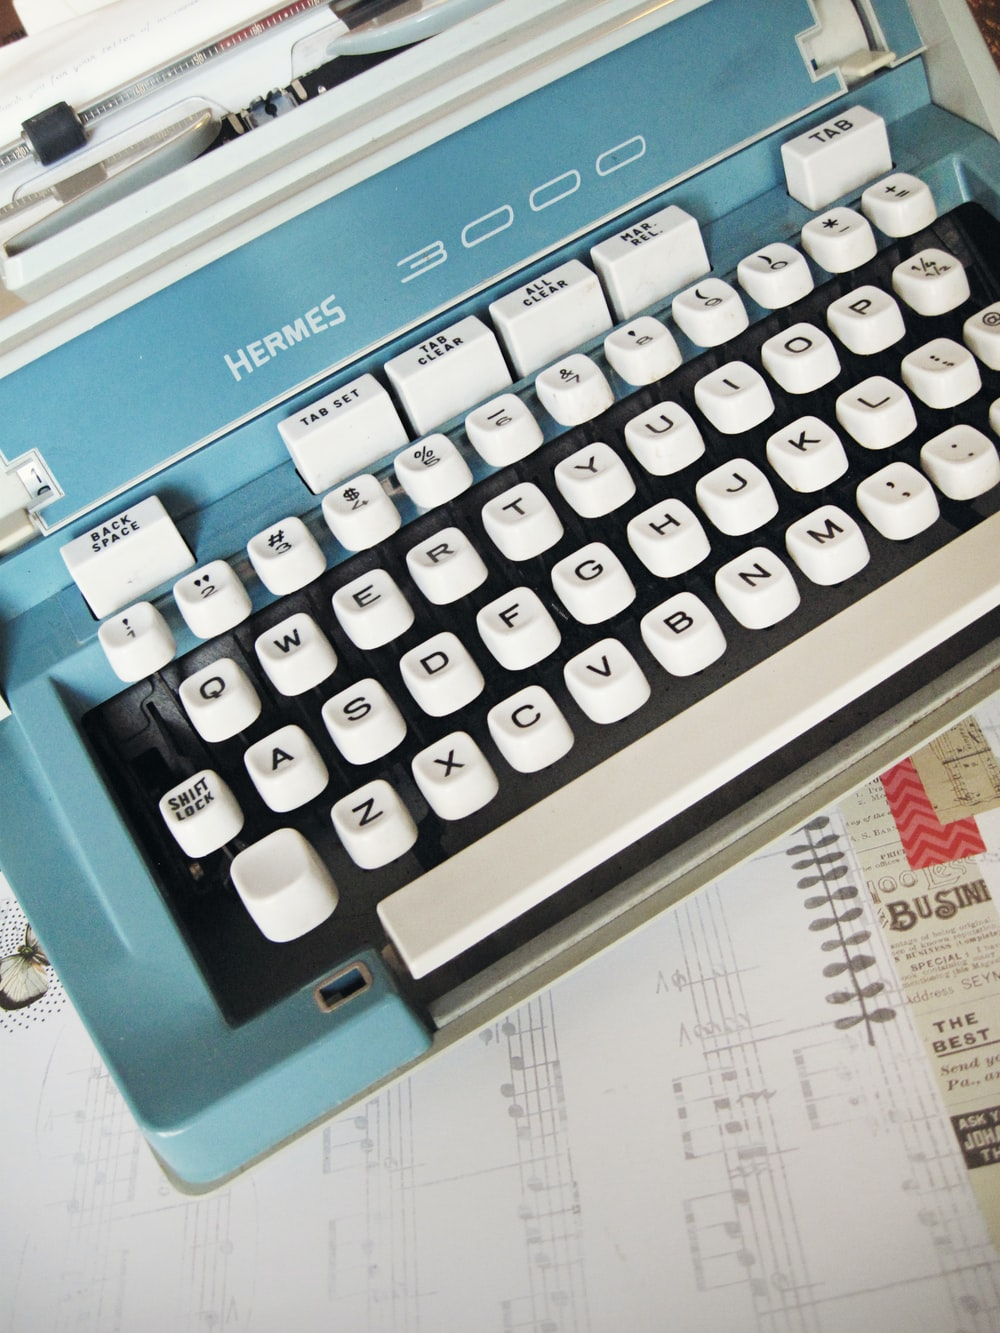 white and teal Hermes 3000 typewriter on white paper